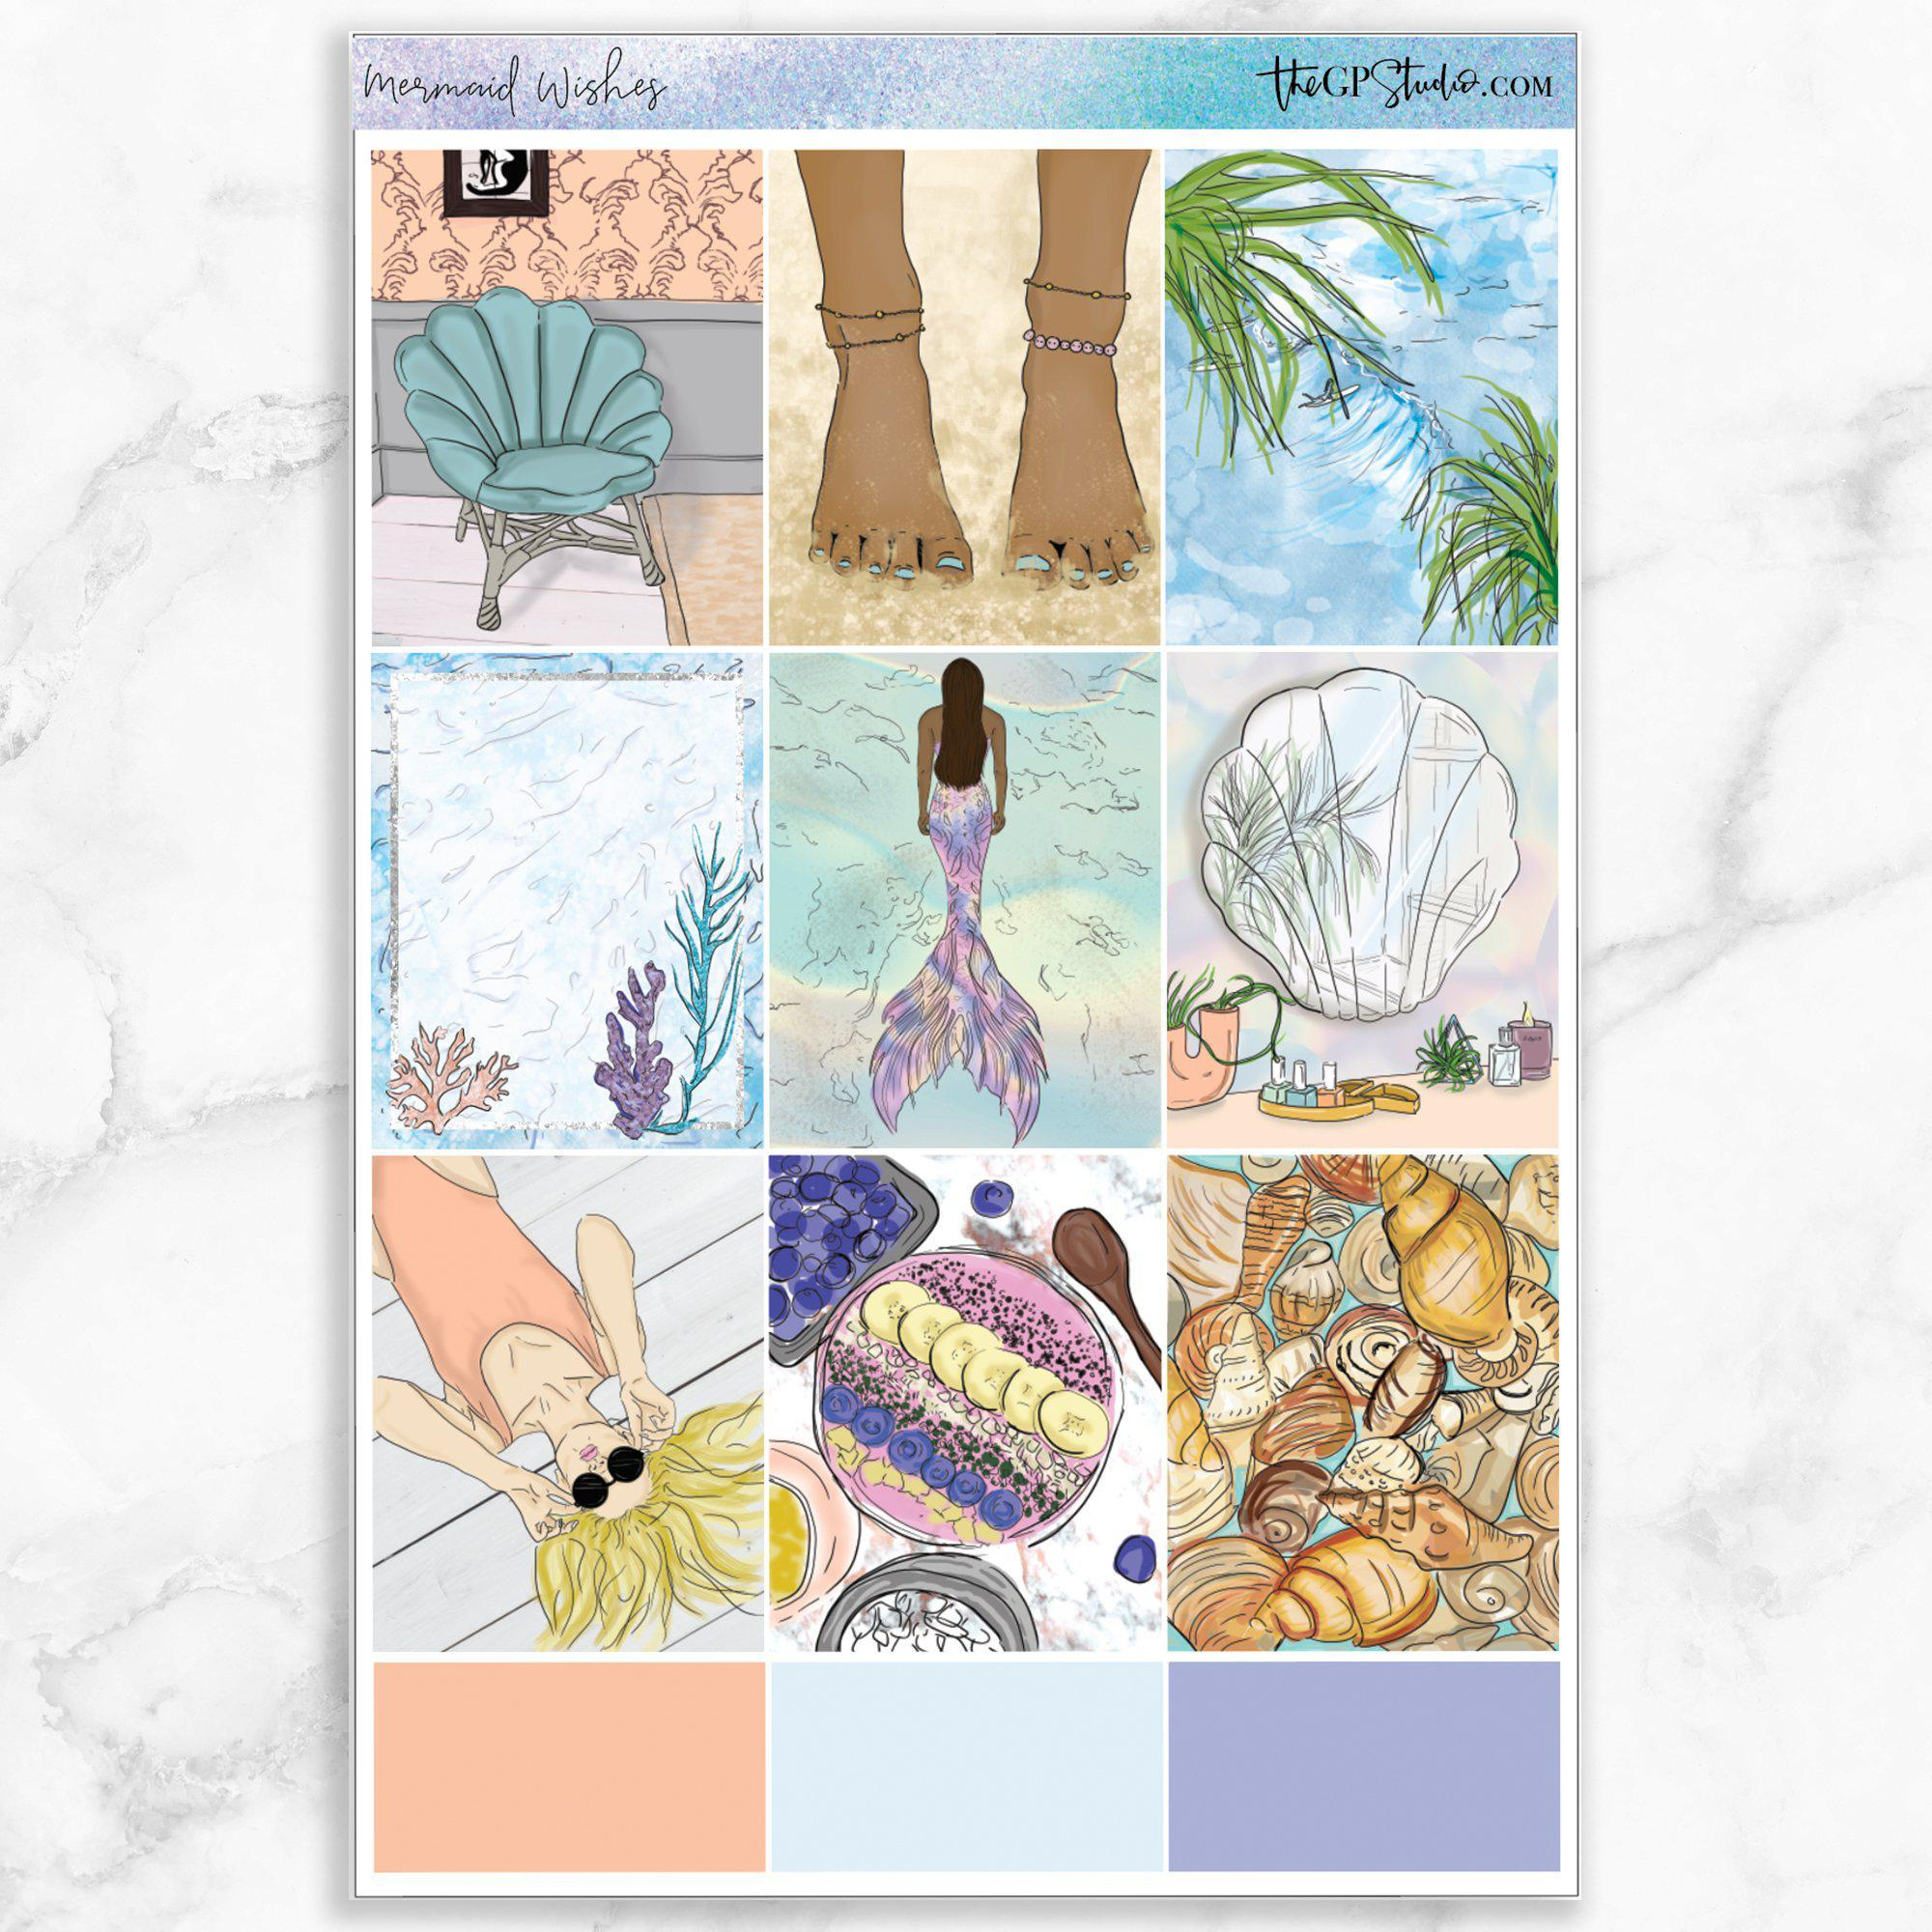 MERMAID WISHES Full Boxes Planner Stickers-The GP Studio